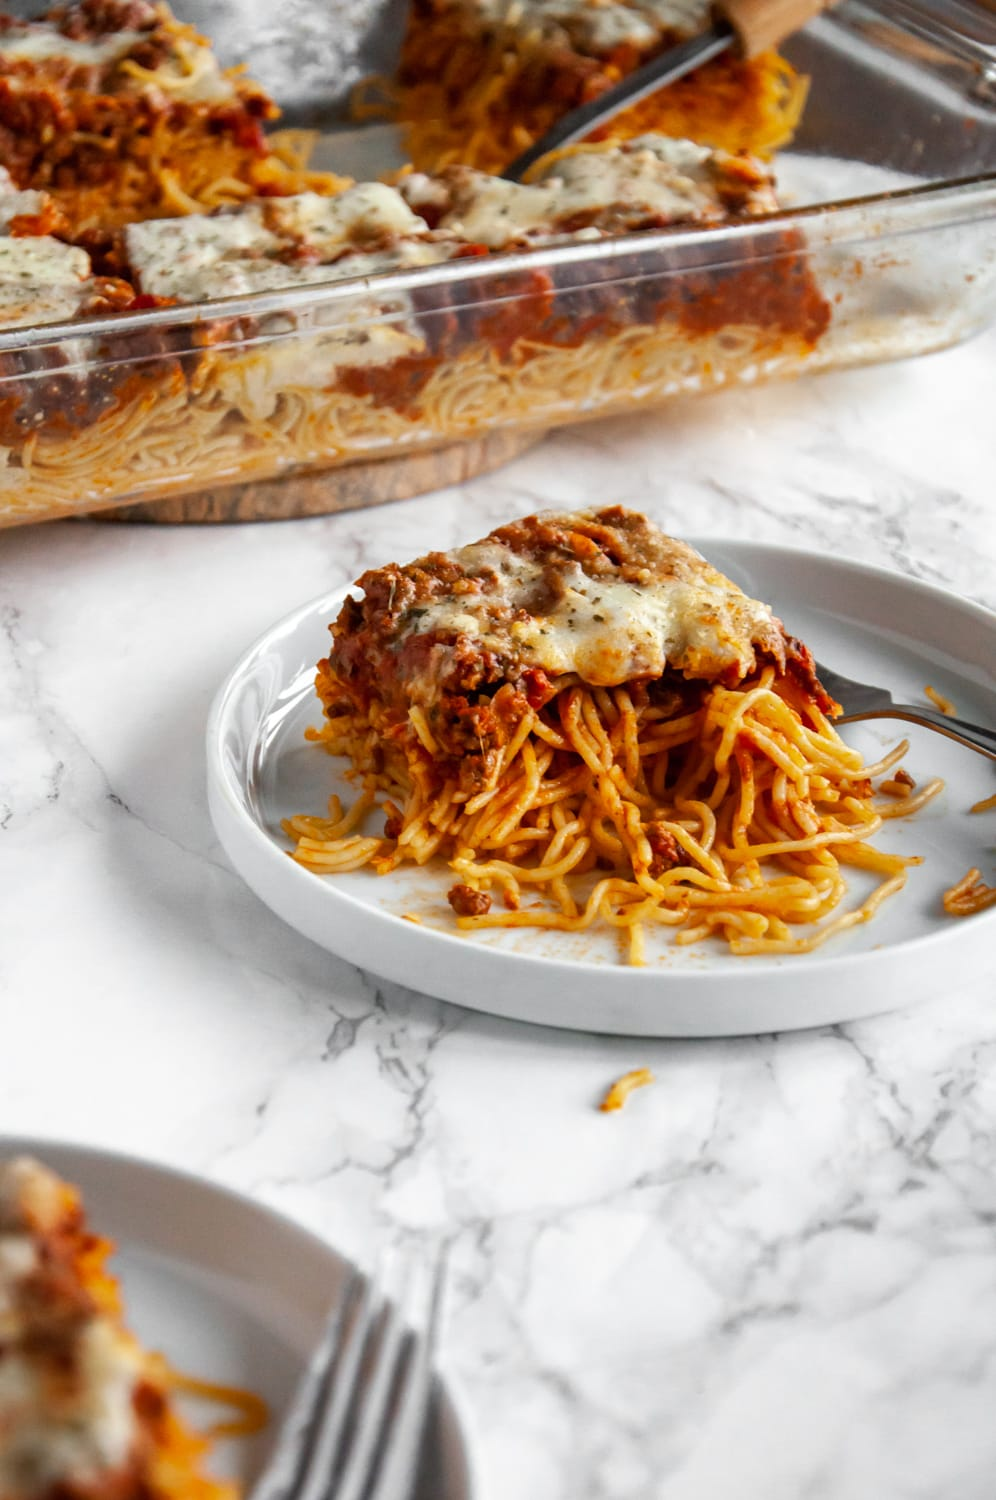 slice of baked spaghetti on a white plate